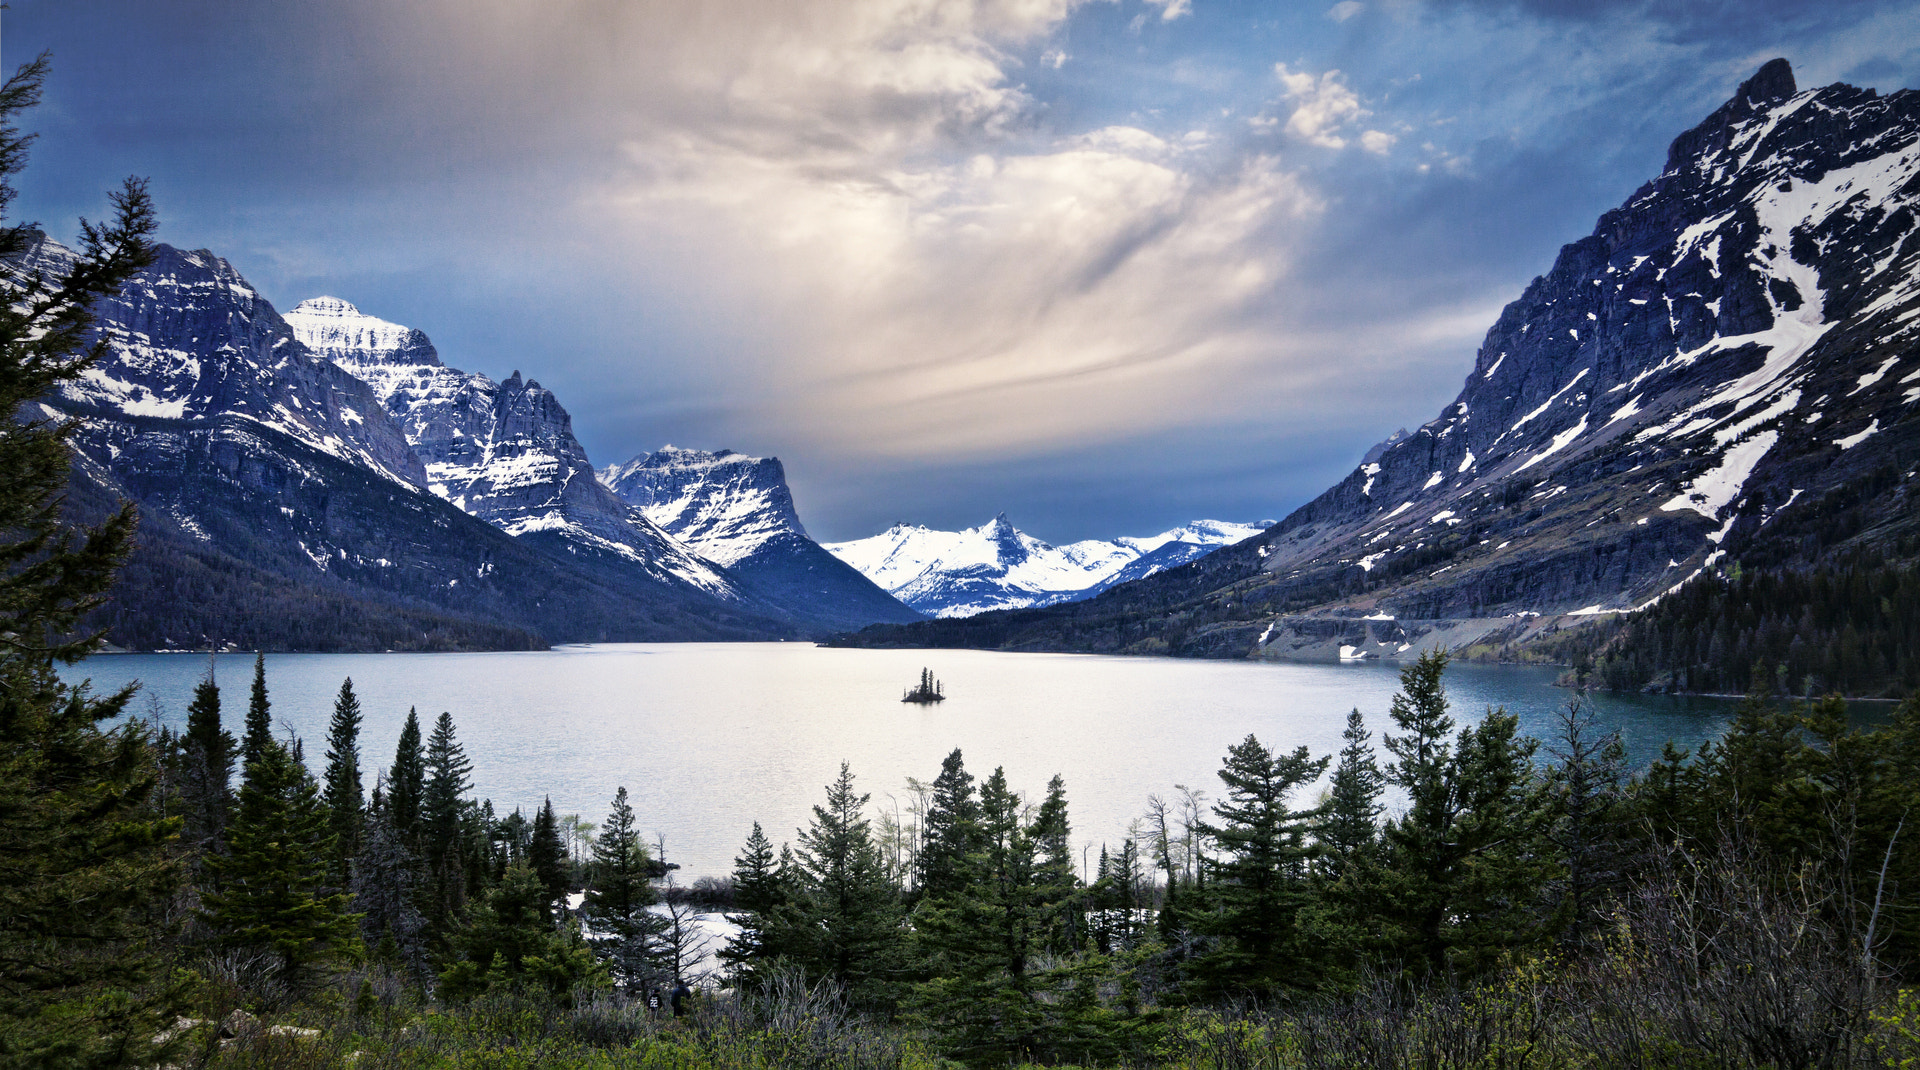 Photograph Wild Goose Island by Lee Parks on 500px